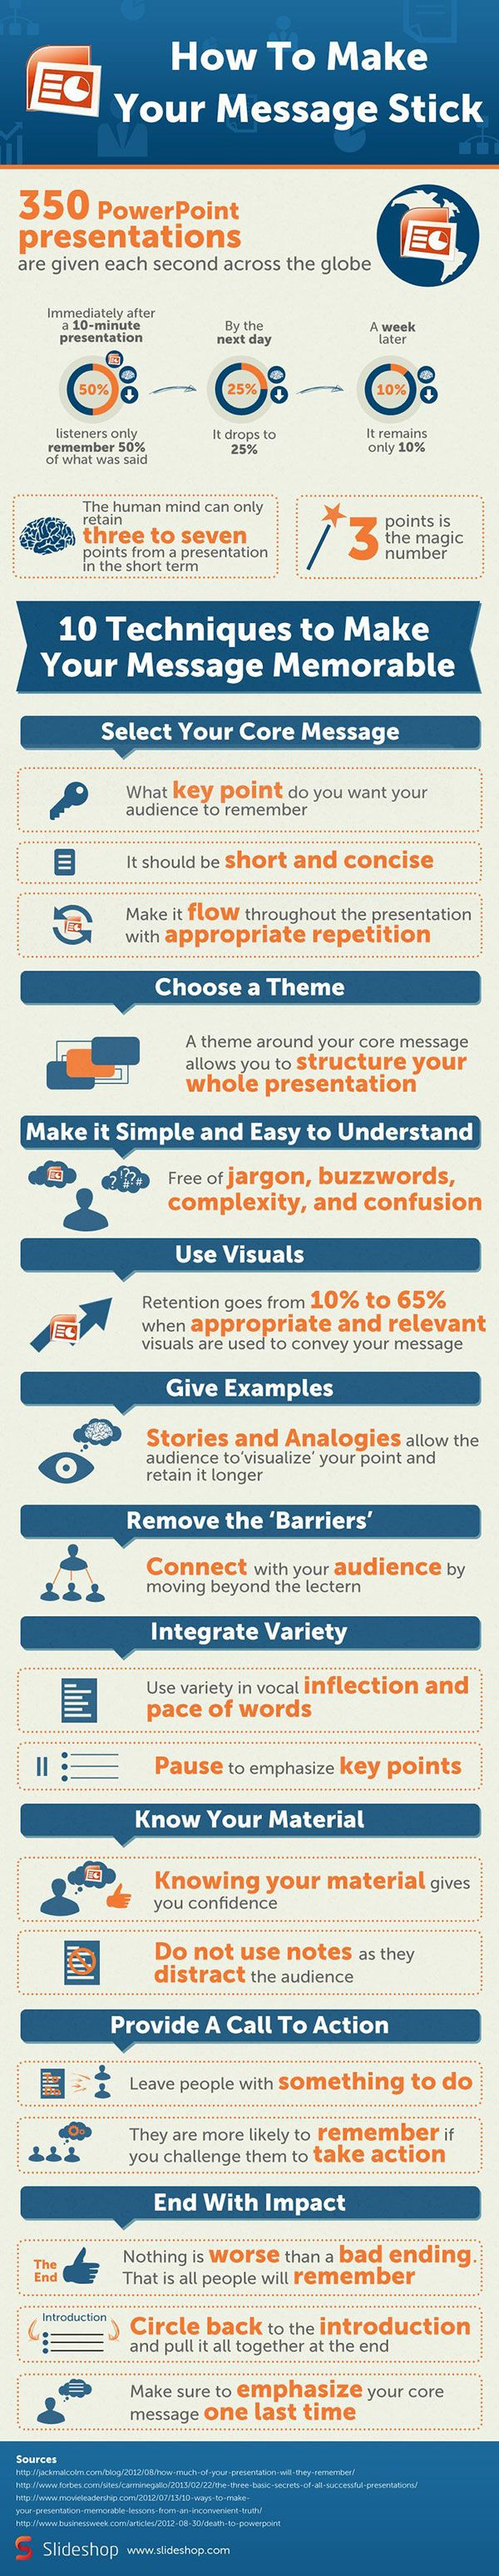 oral presentation tips Repinned by Chesapeake College Adult Ed. Free classes on the Eastern Shore of MD to help you earn your GED - H.S. Diploma or Learn English (ESL). www.Chesapeake.edu